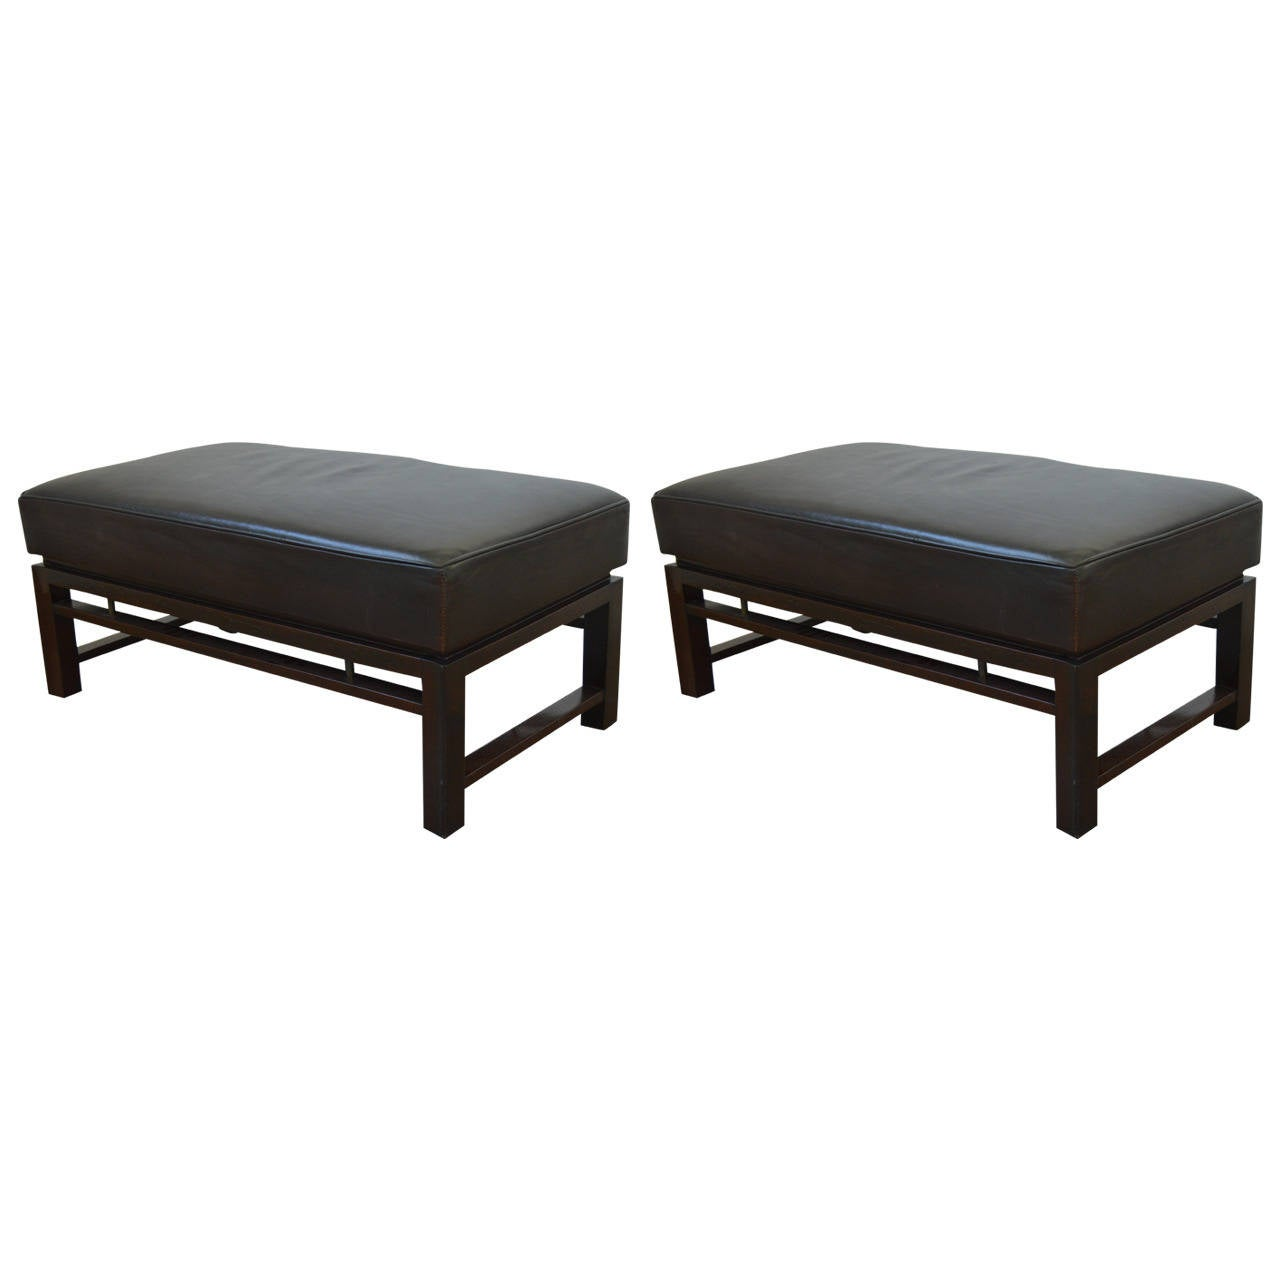 pair of rectangular leather benches edward wormley for dunbar  - pair of rectangular leather benches edward wormley for dunbar s